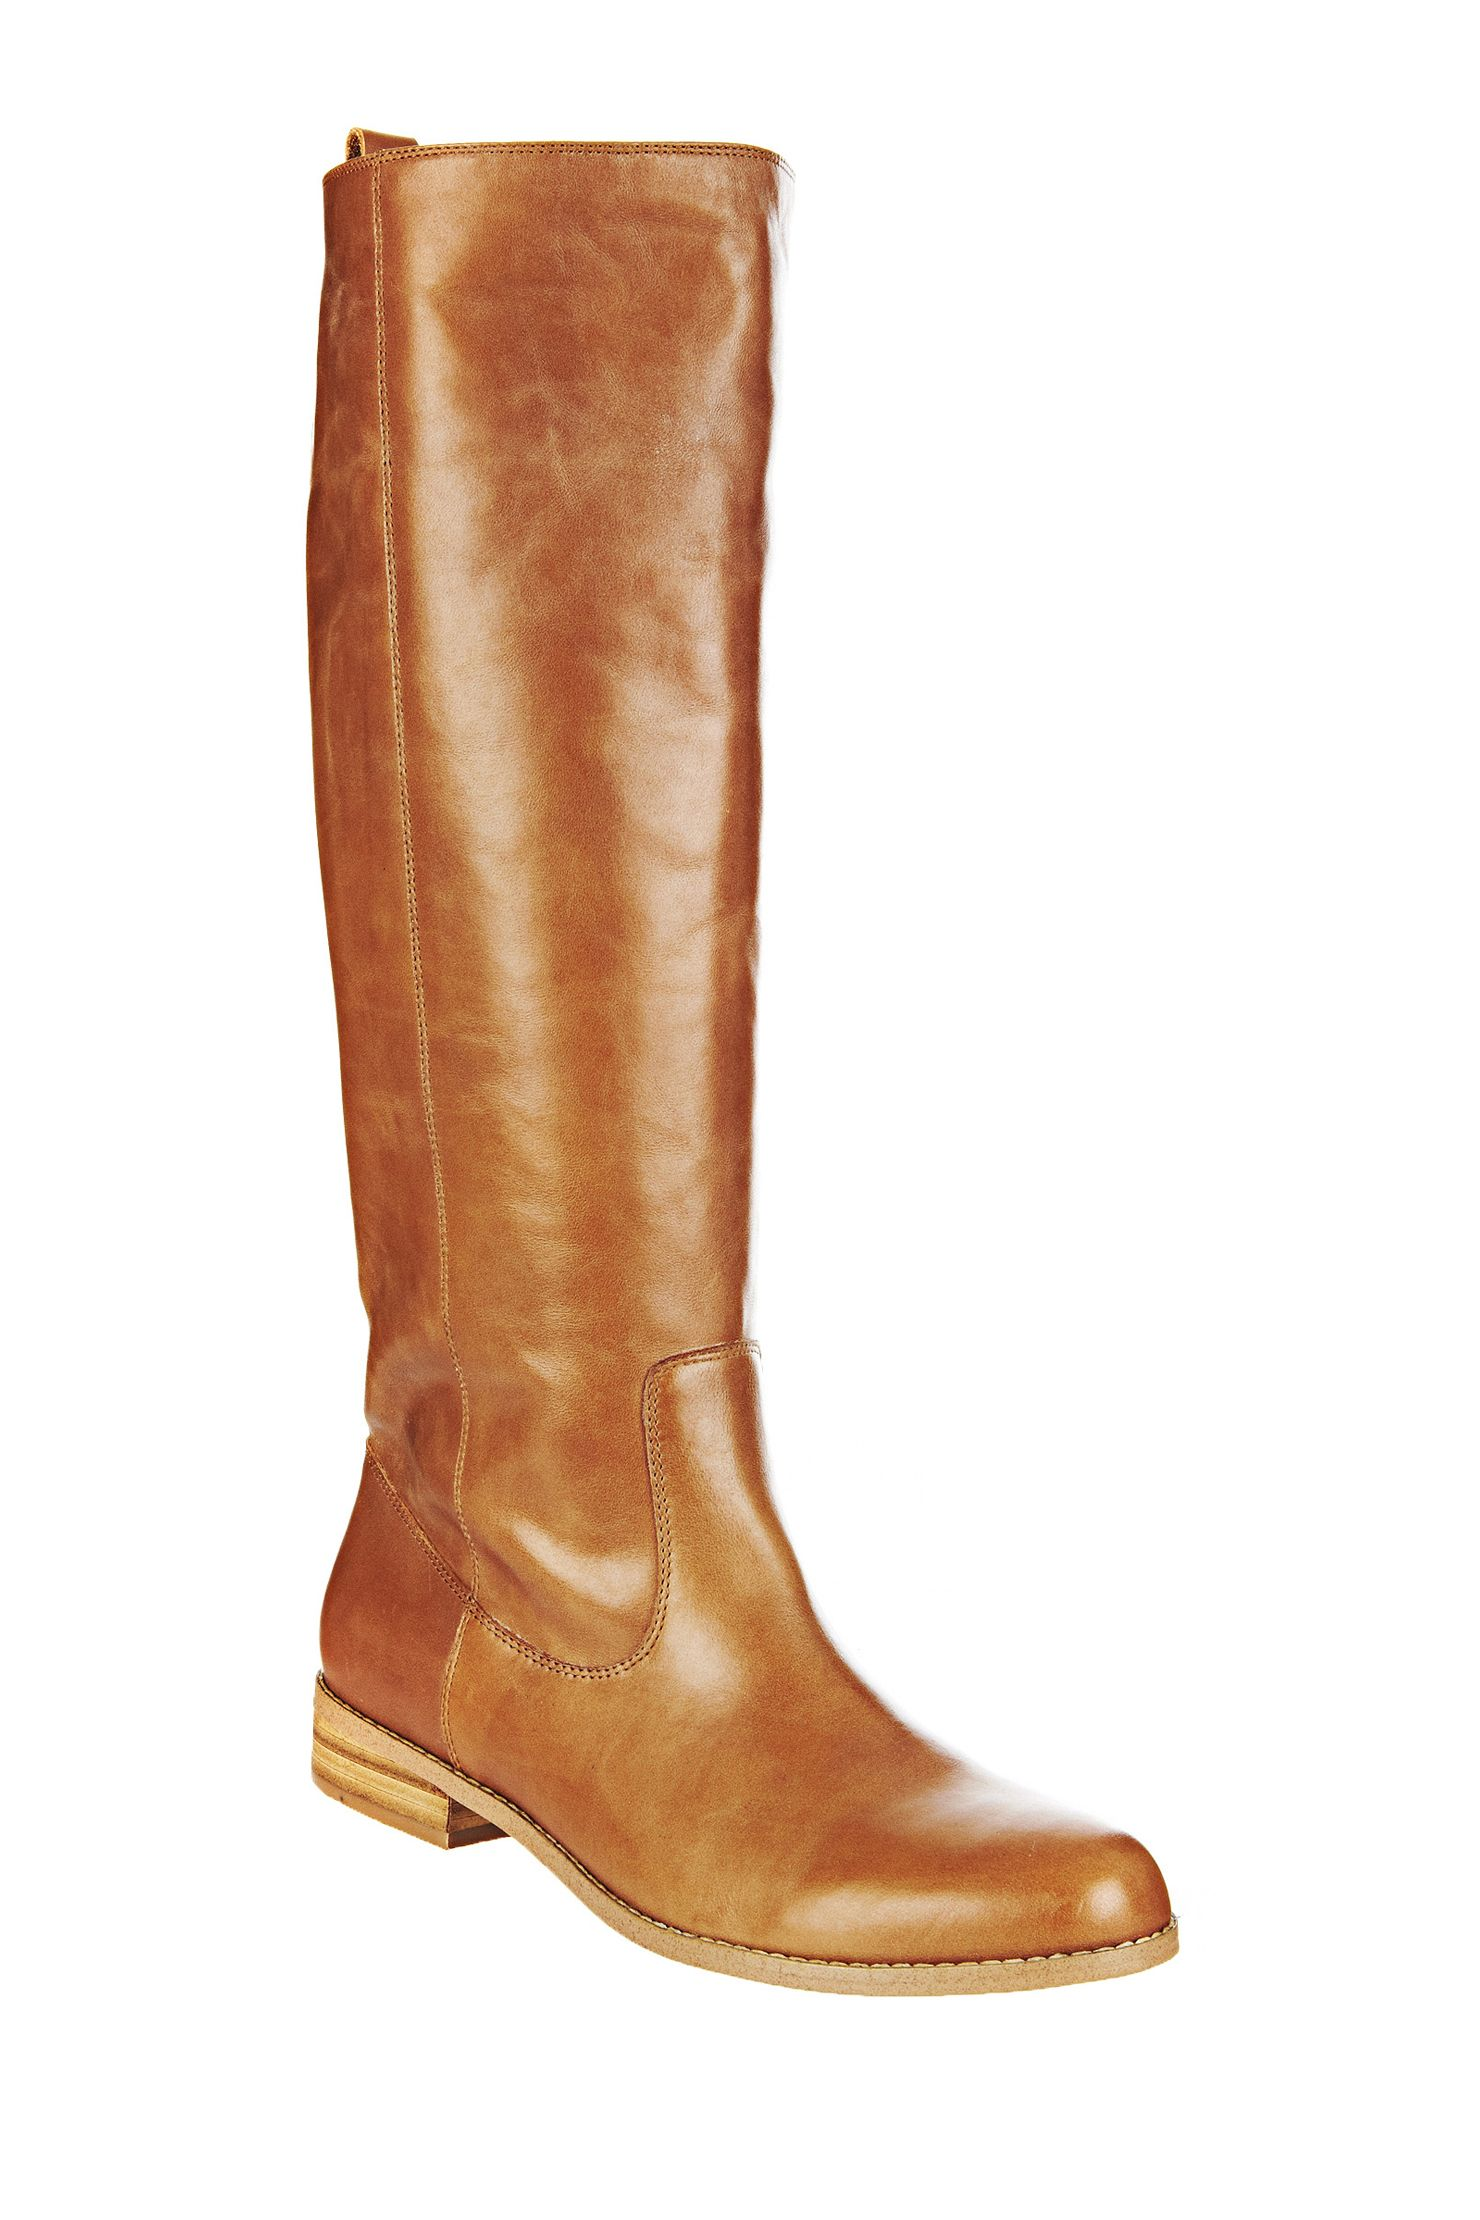 103637692961f3 Bottes en cuir Moon Camel Mellow Yellow sur MonShowroom.com | RB ...